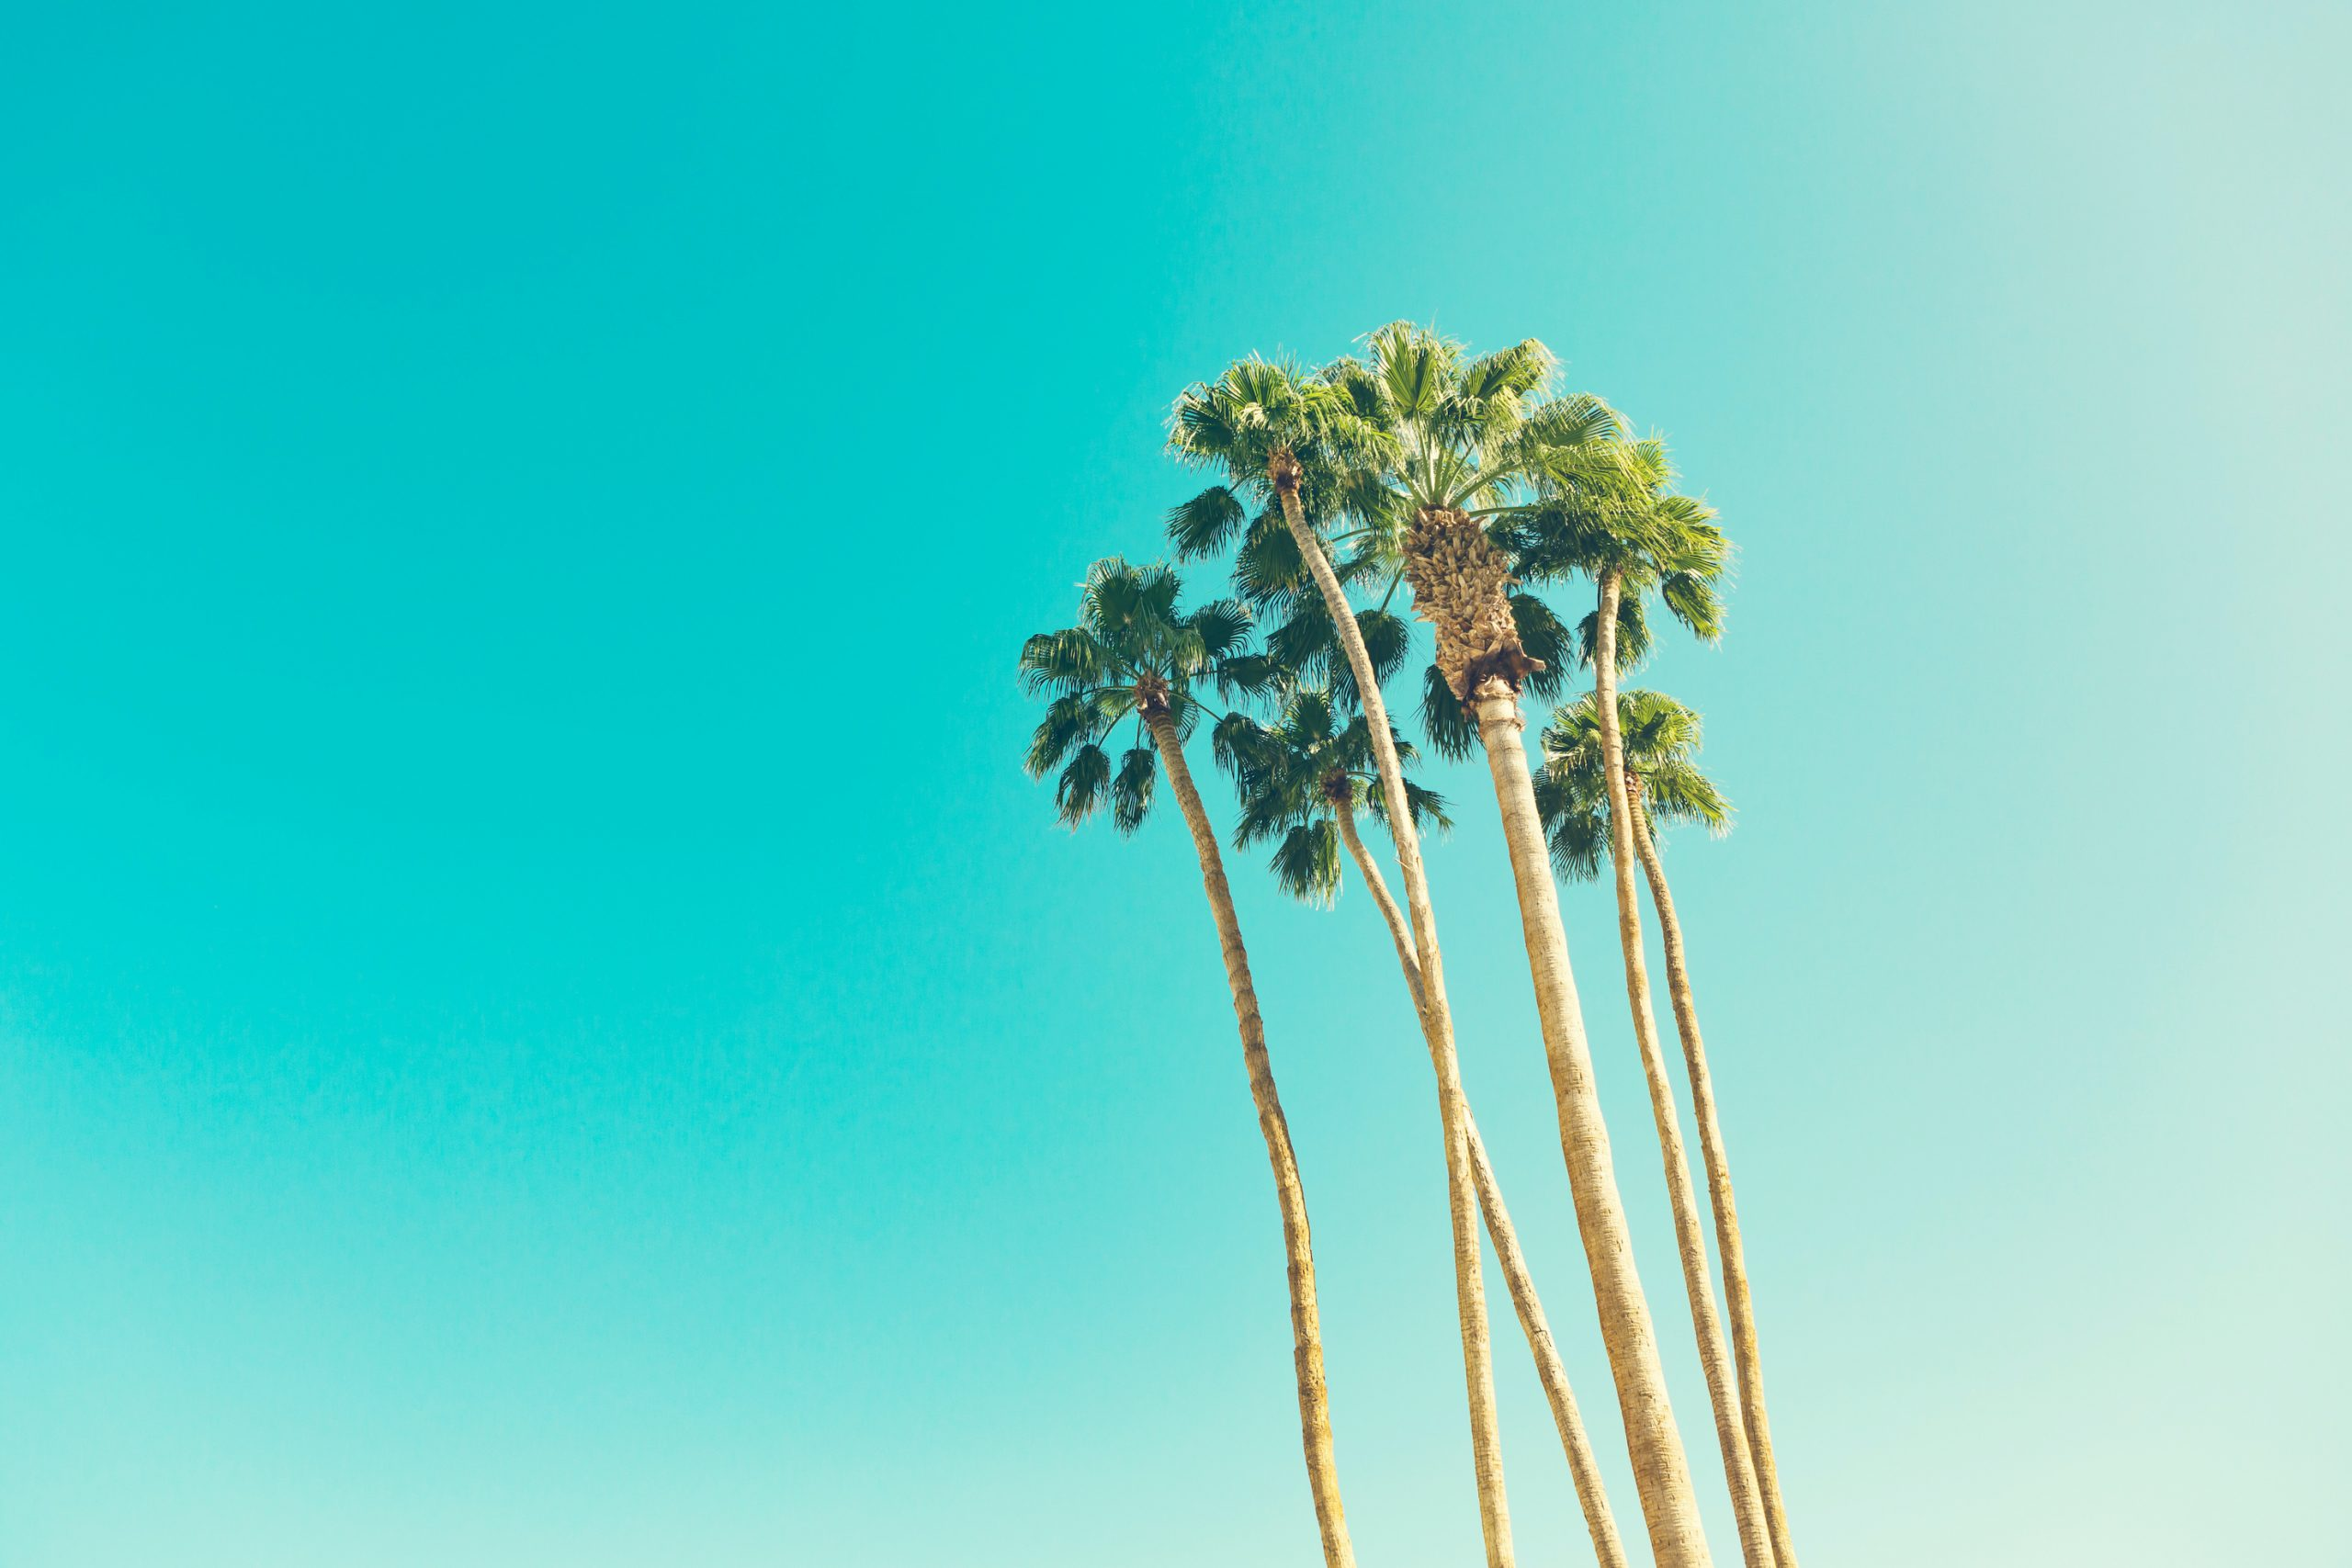 strong straight palm trees